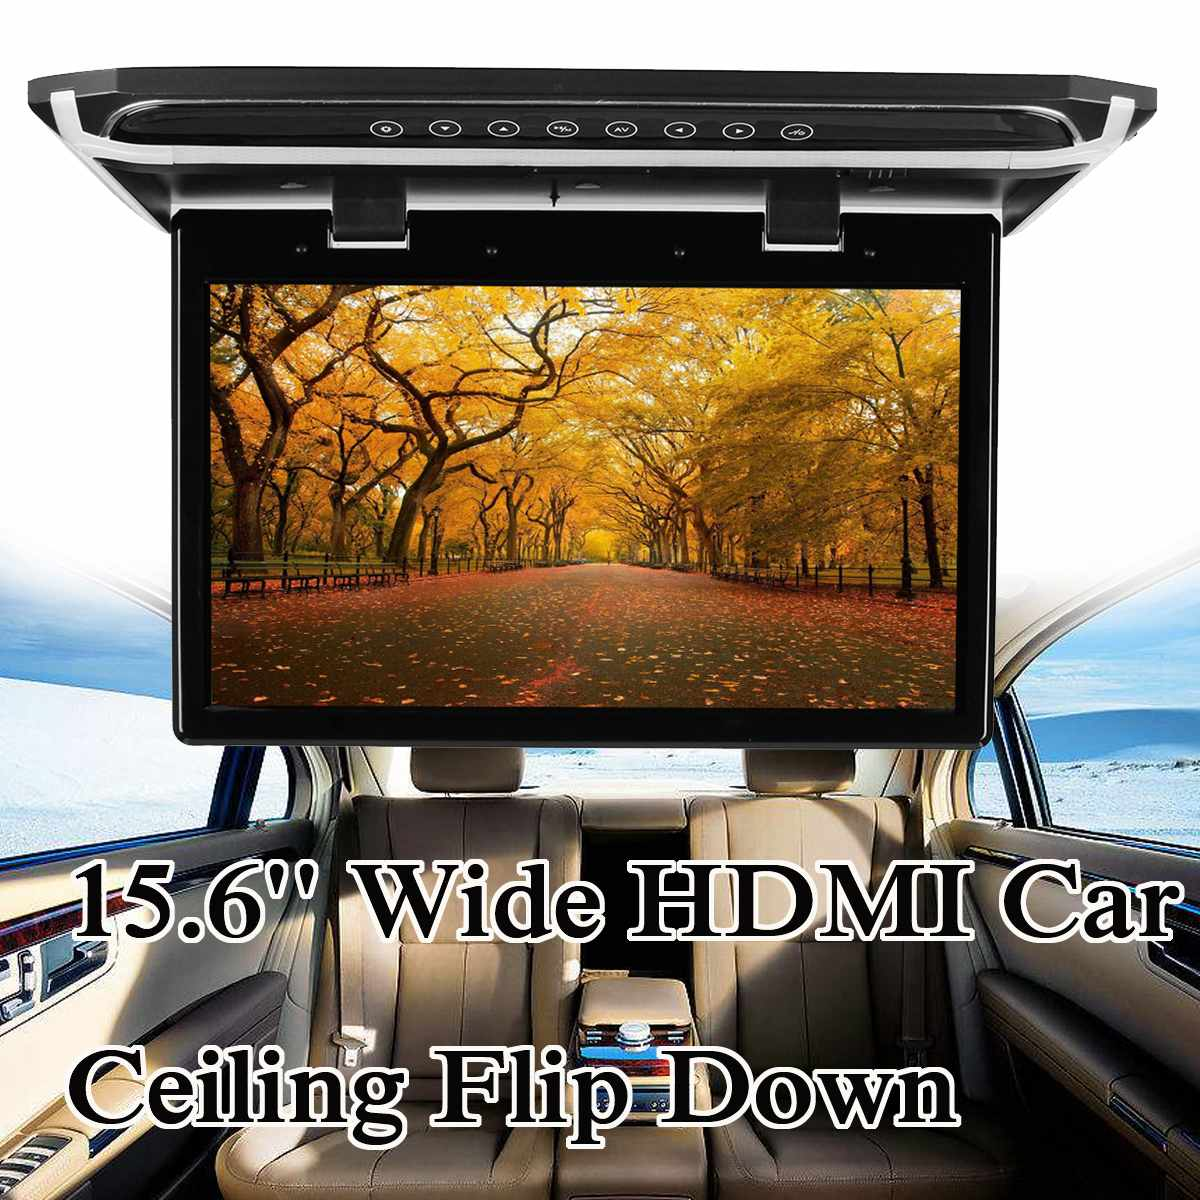 15.6 HD Wide Screen Car DVD Player HDMI Car Ceiling Flip Down Monitor Roof Mount Player 1920*1080 - 5